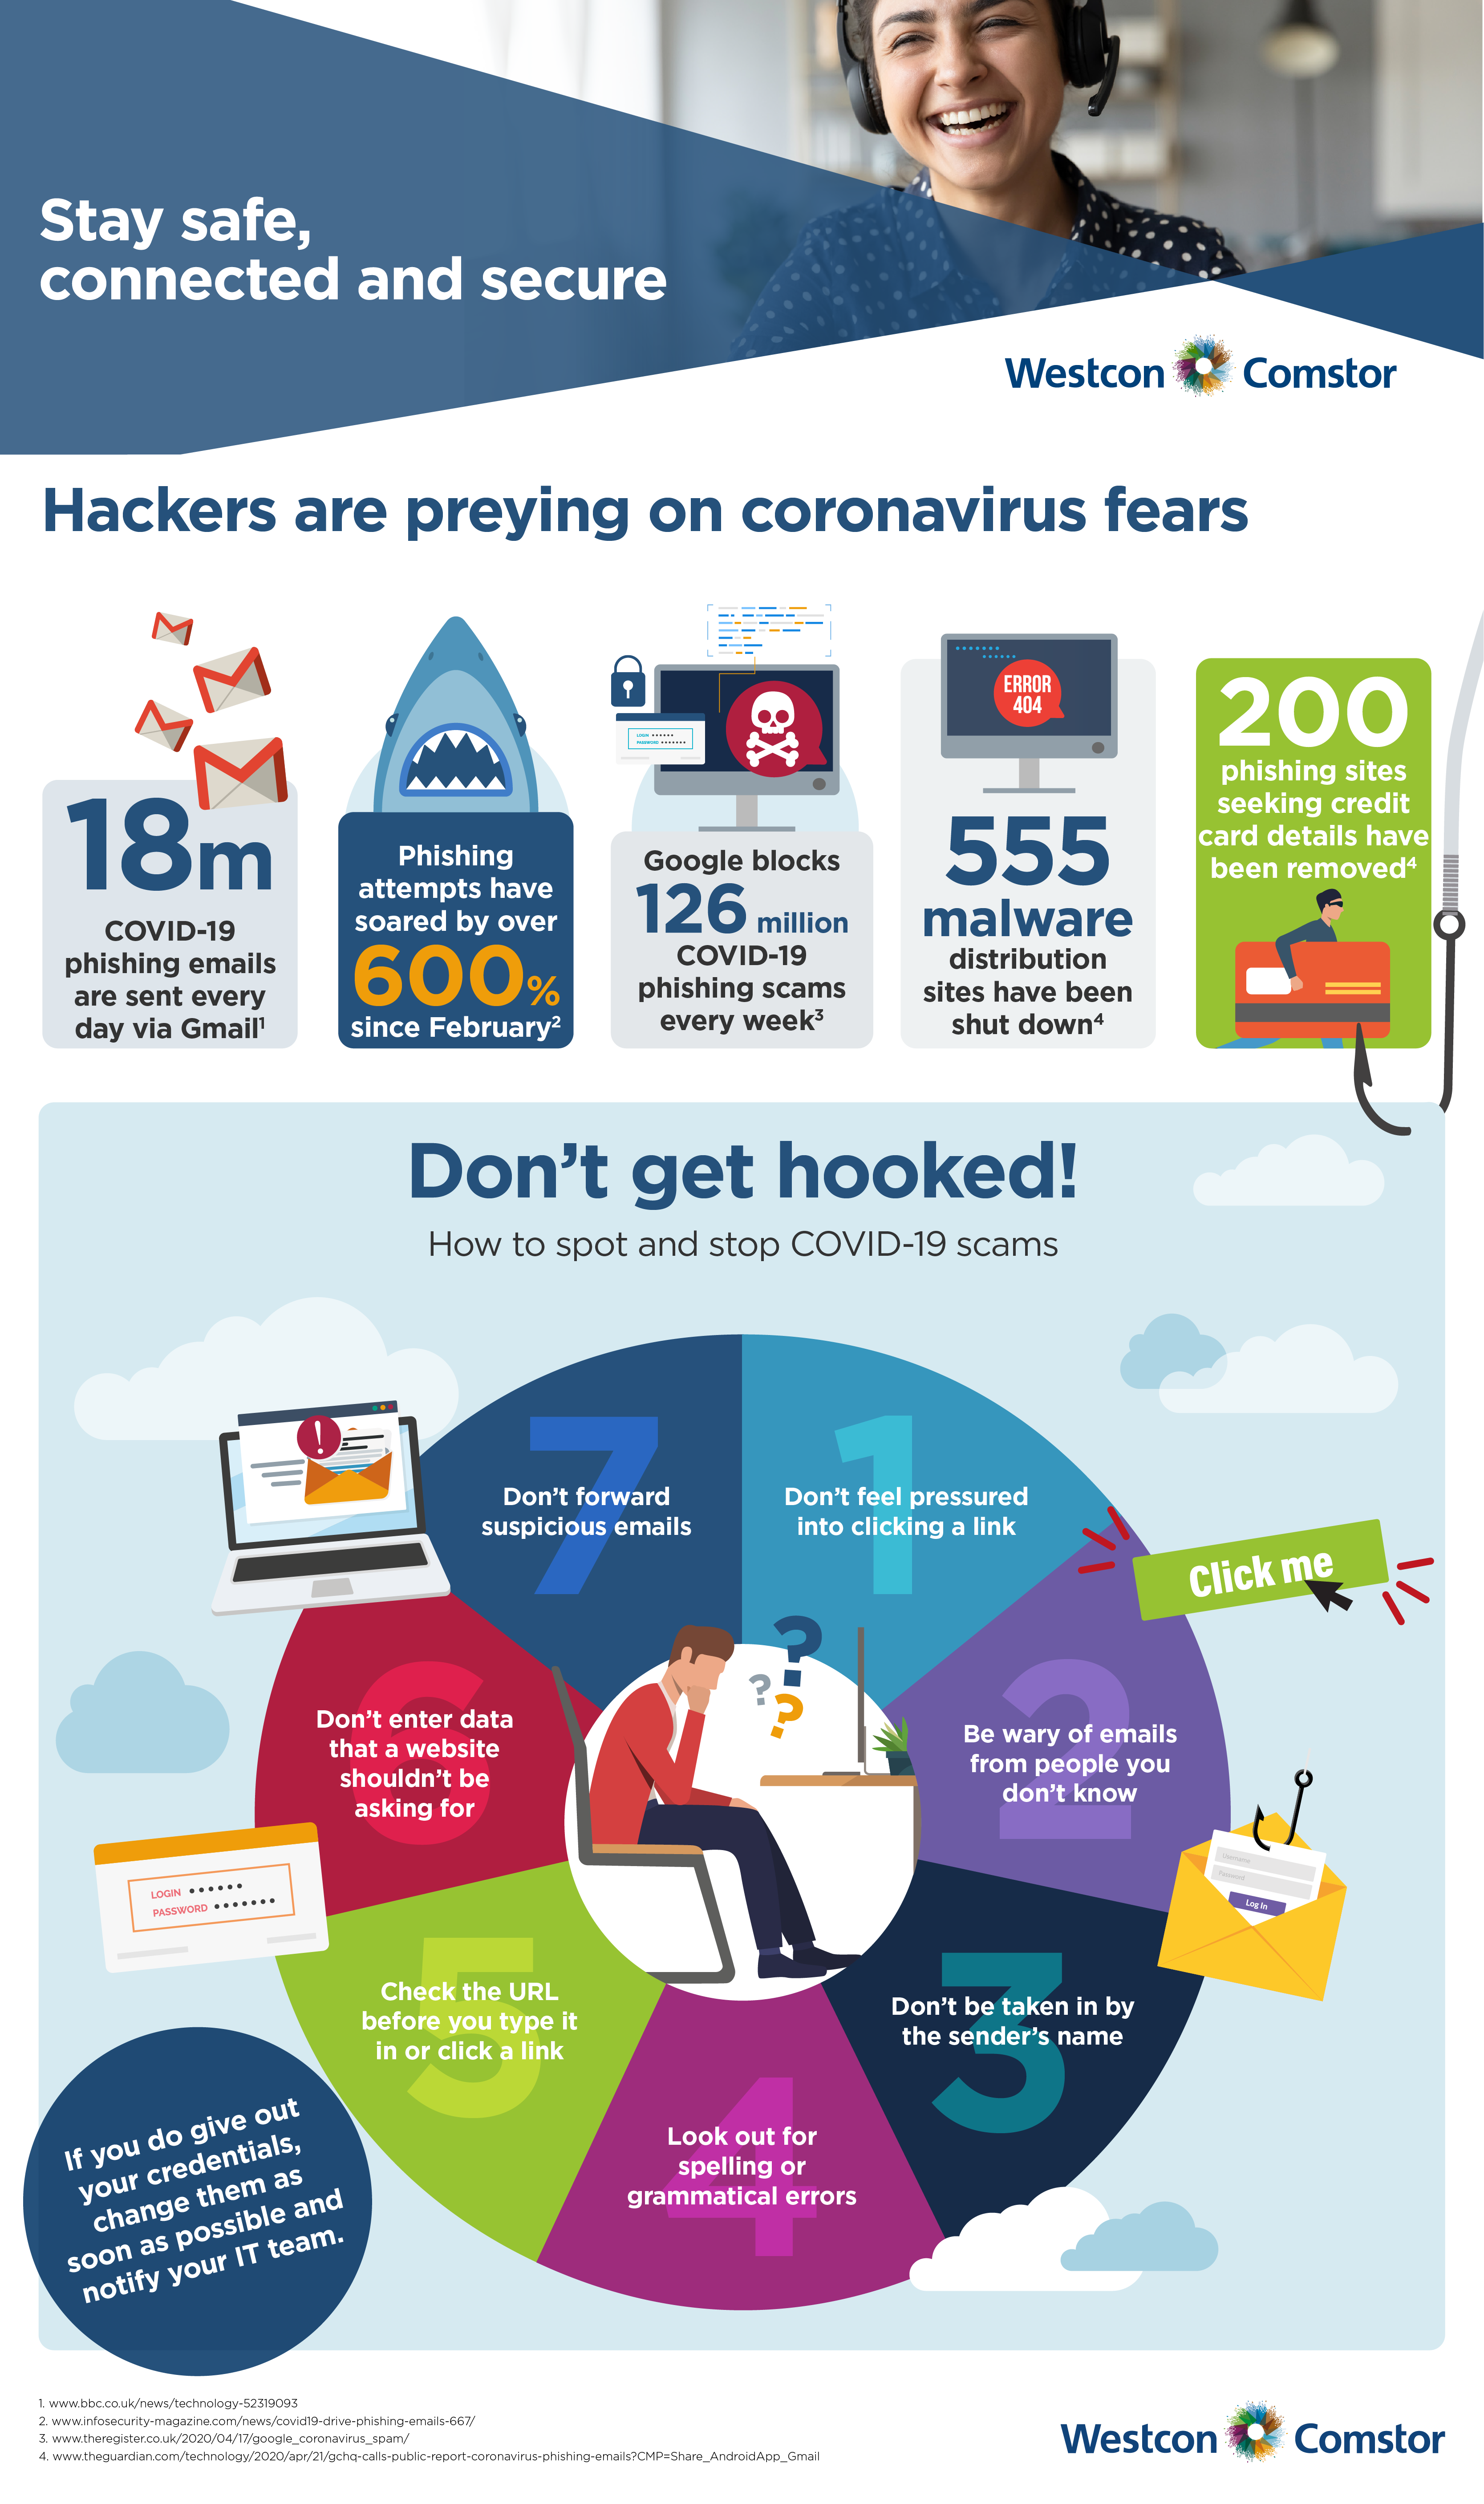 Don't get hooked infographic